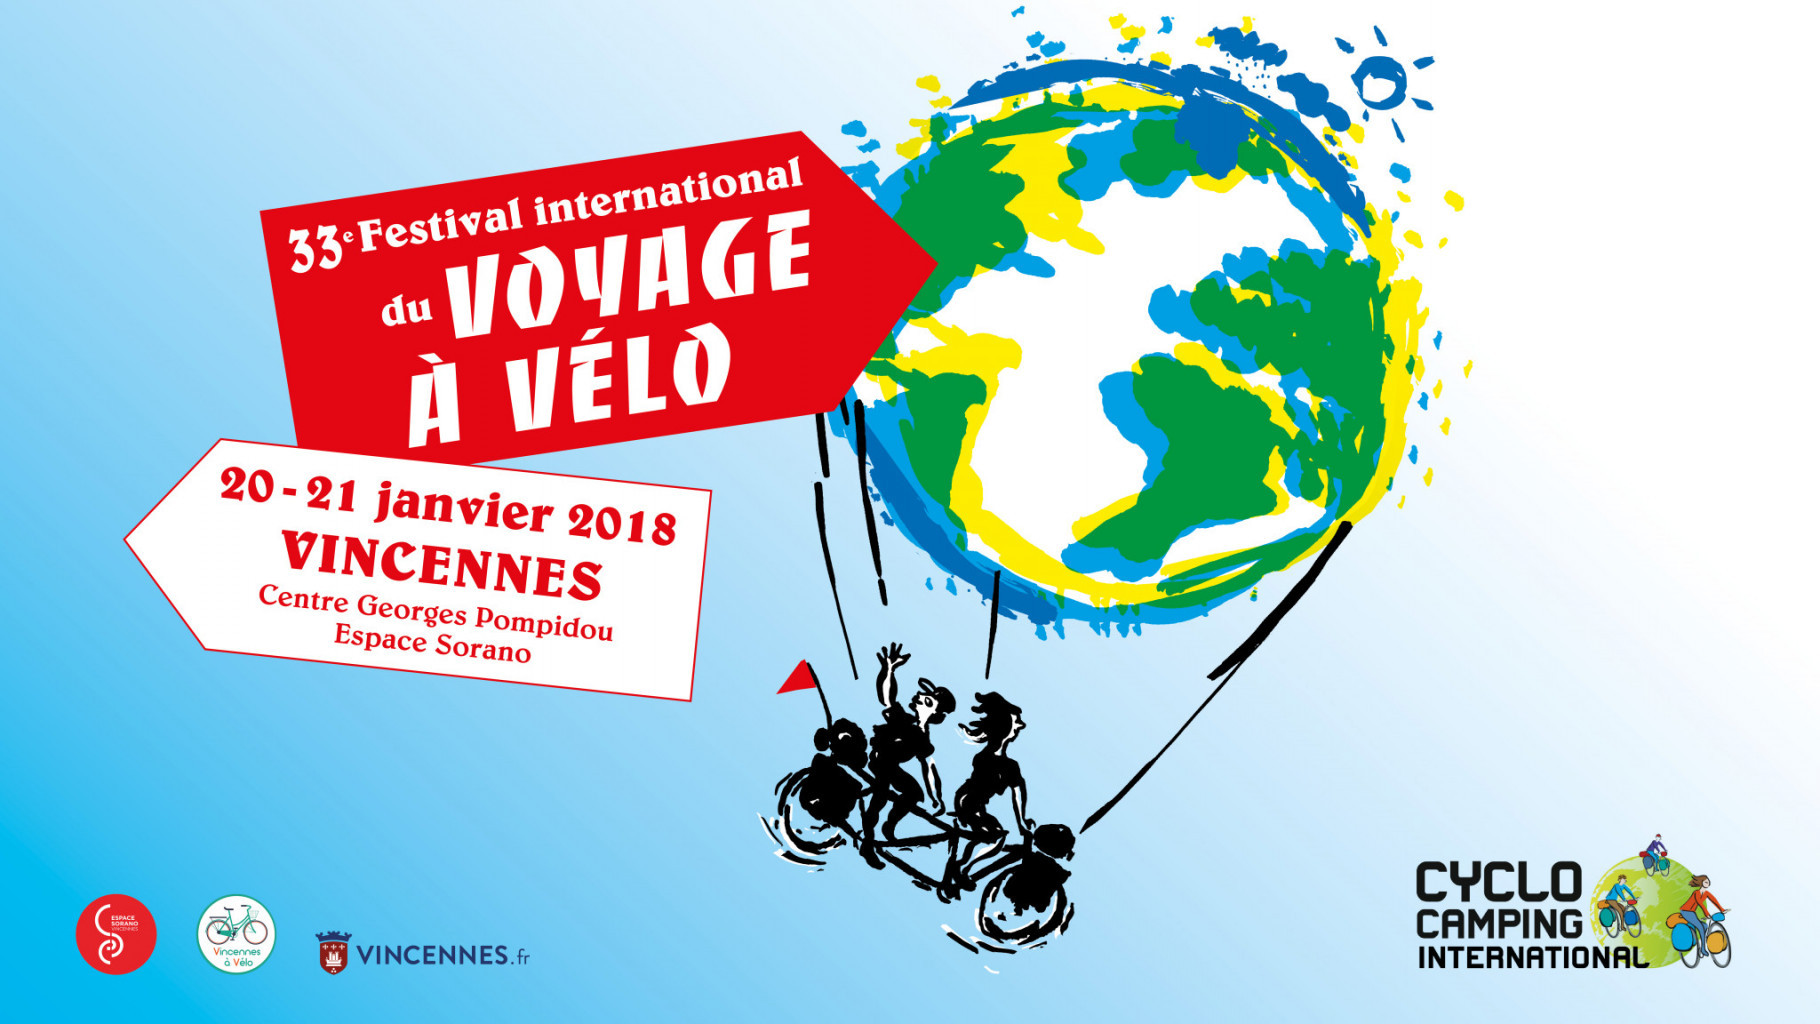 Festival International Voyage vélo